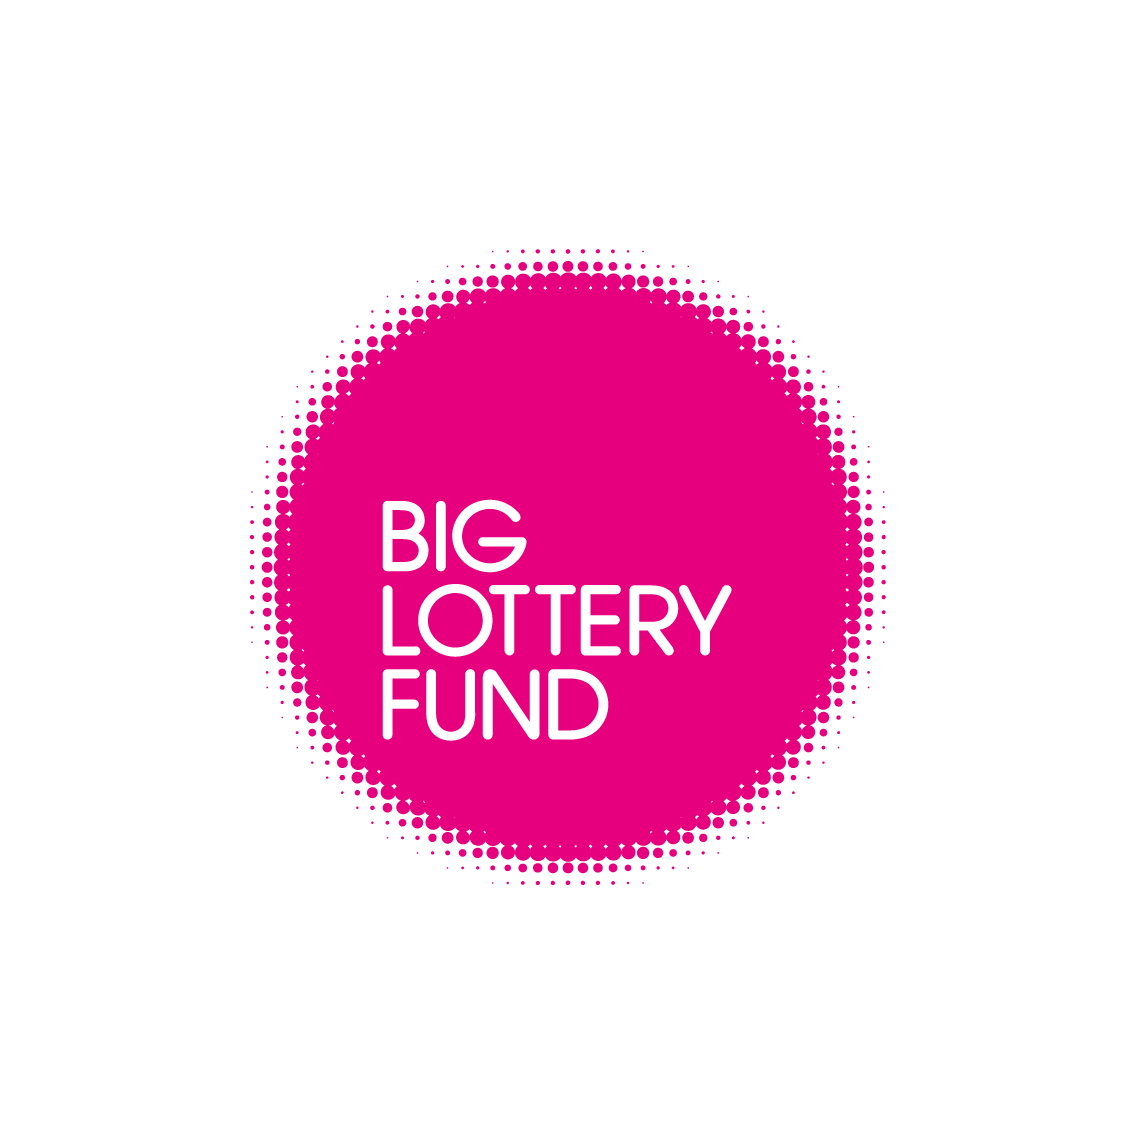 Big Lottery Fund - The last 12 months of development work, of which the systems lab 2 day event was a key outcome, was proudly supported by Big Lottery Fund.